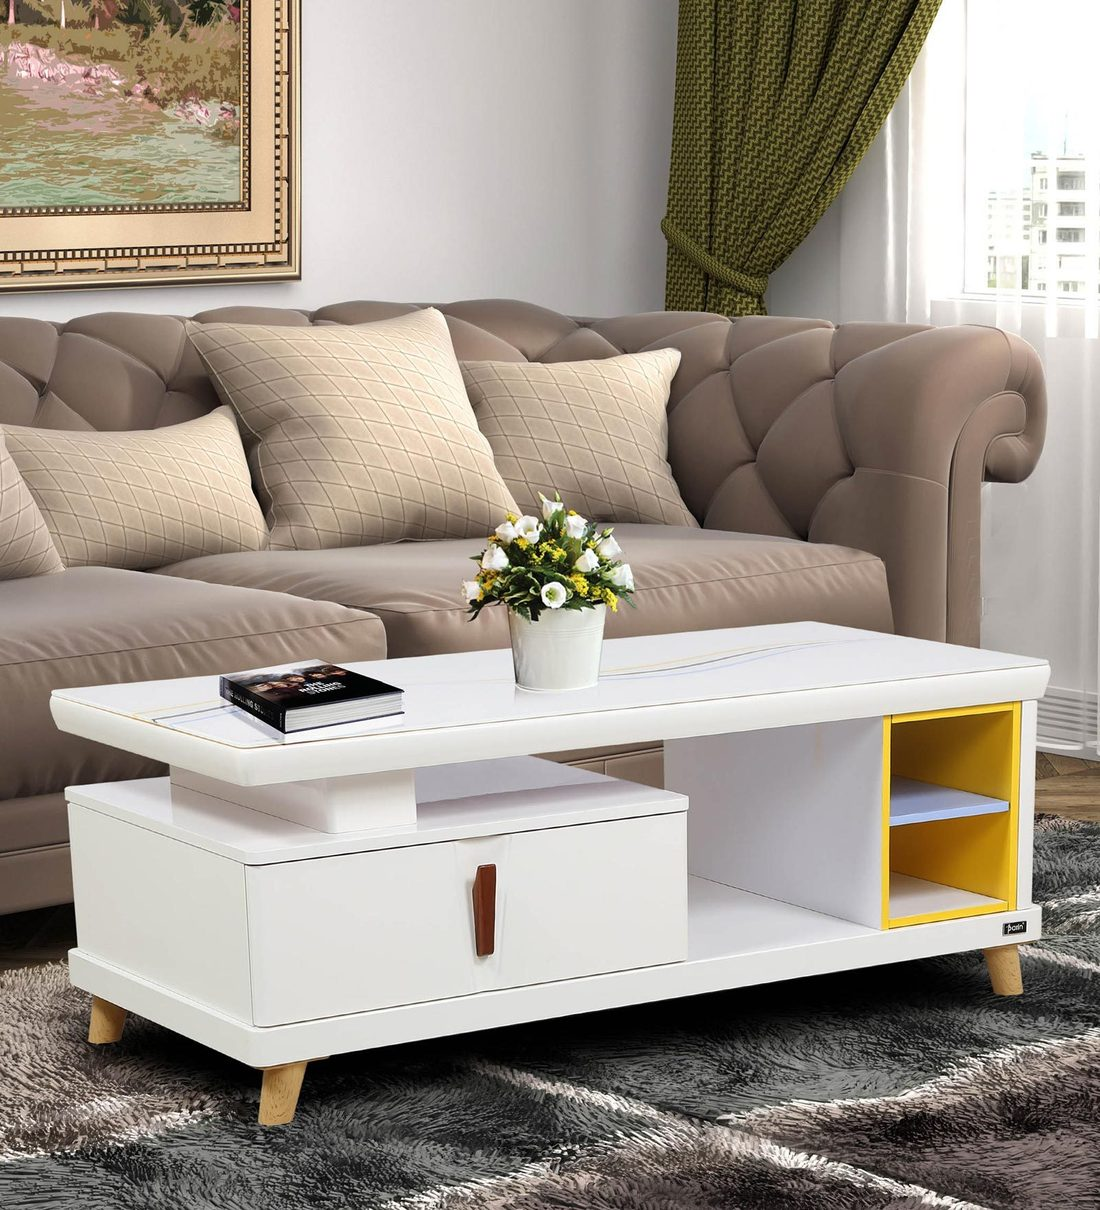 Buy Tulsa Center Table With Drawer In Ivory Finish By Parin Online Contemporary Rectangular Coffee Tables Tables Furniture Pepperfry Product